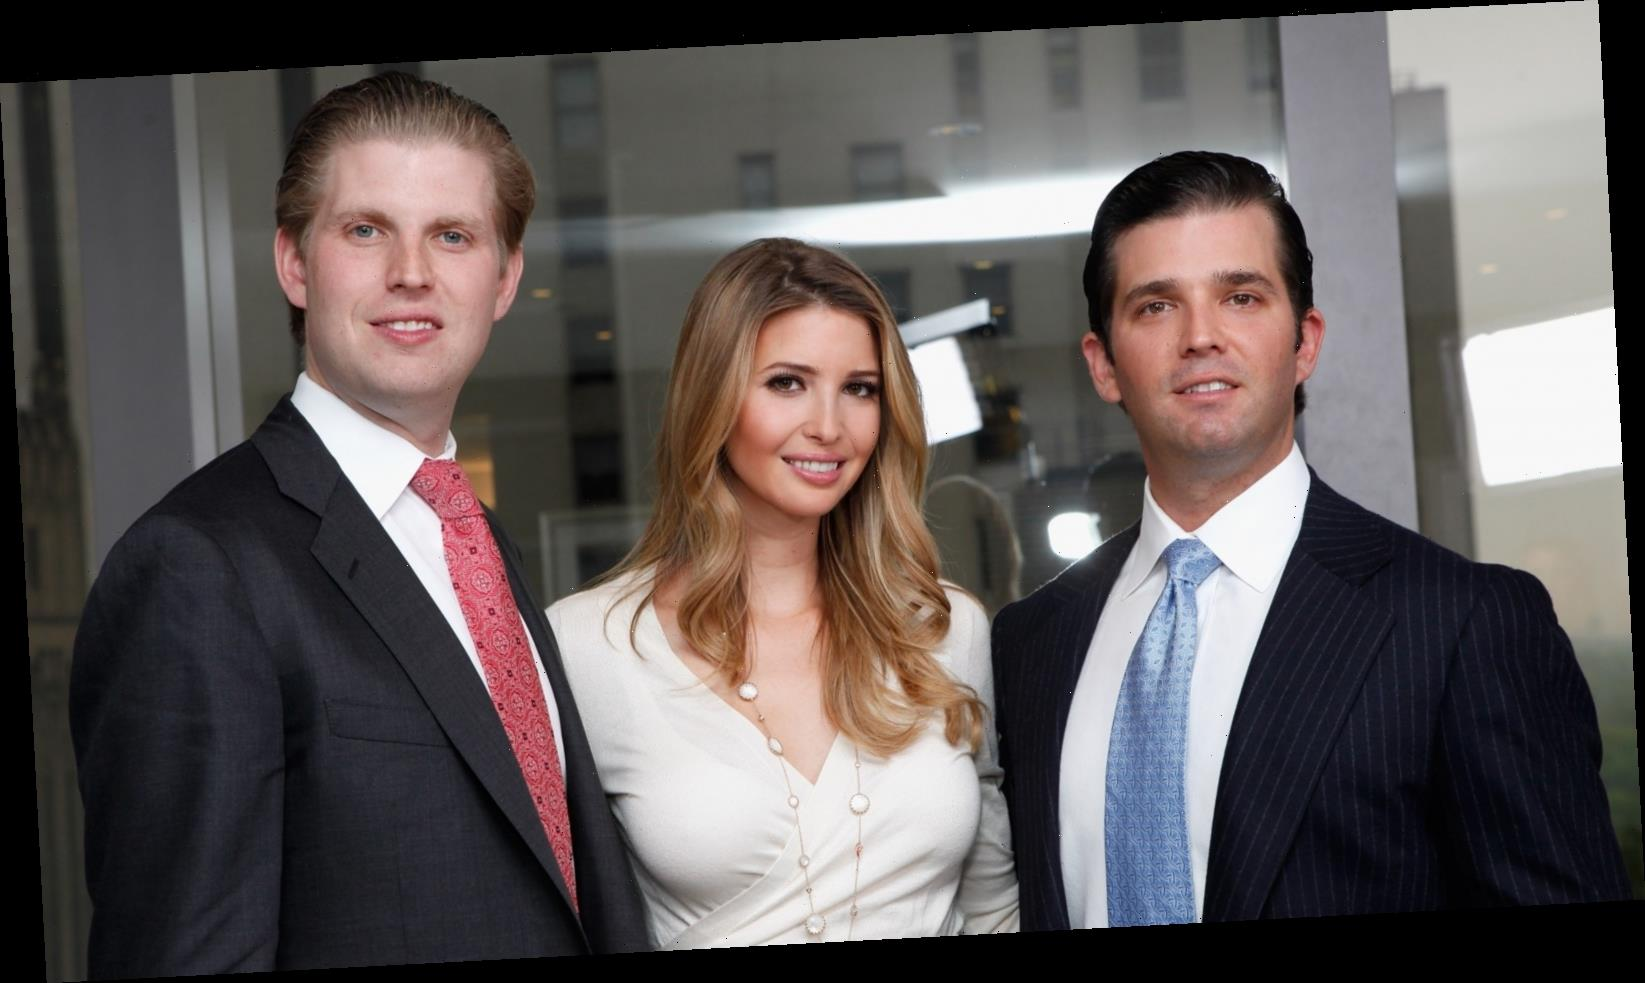 The truth about Ivanka Trump's relationship with her brothers